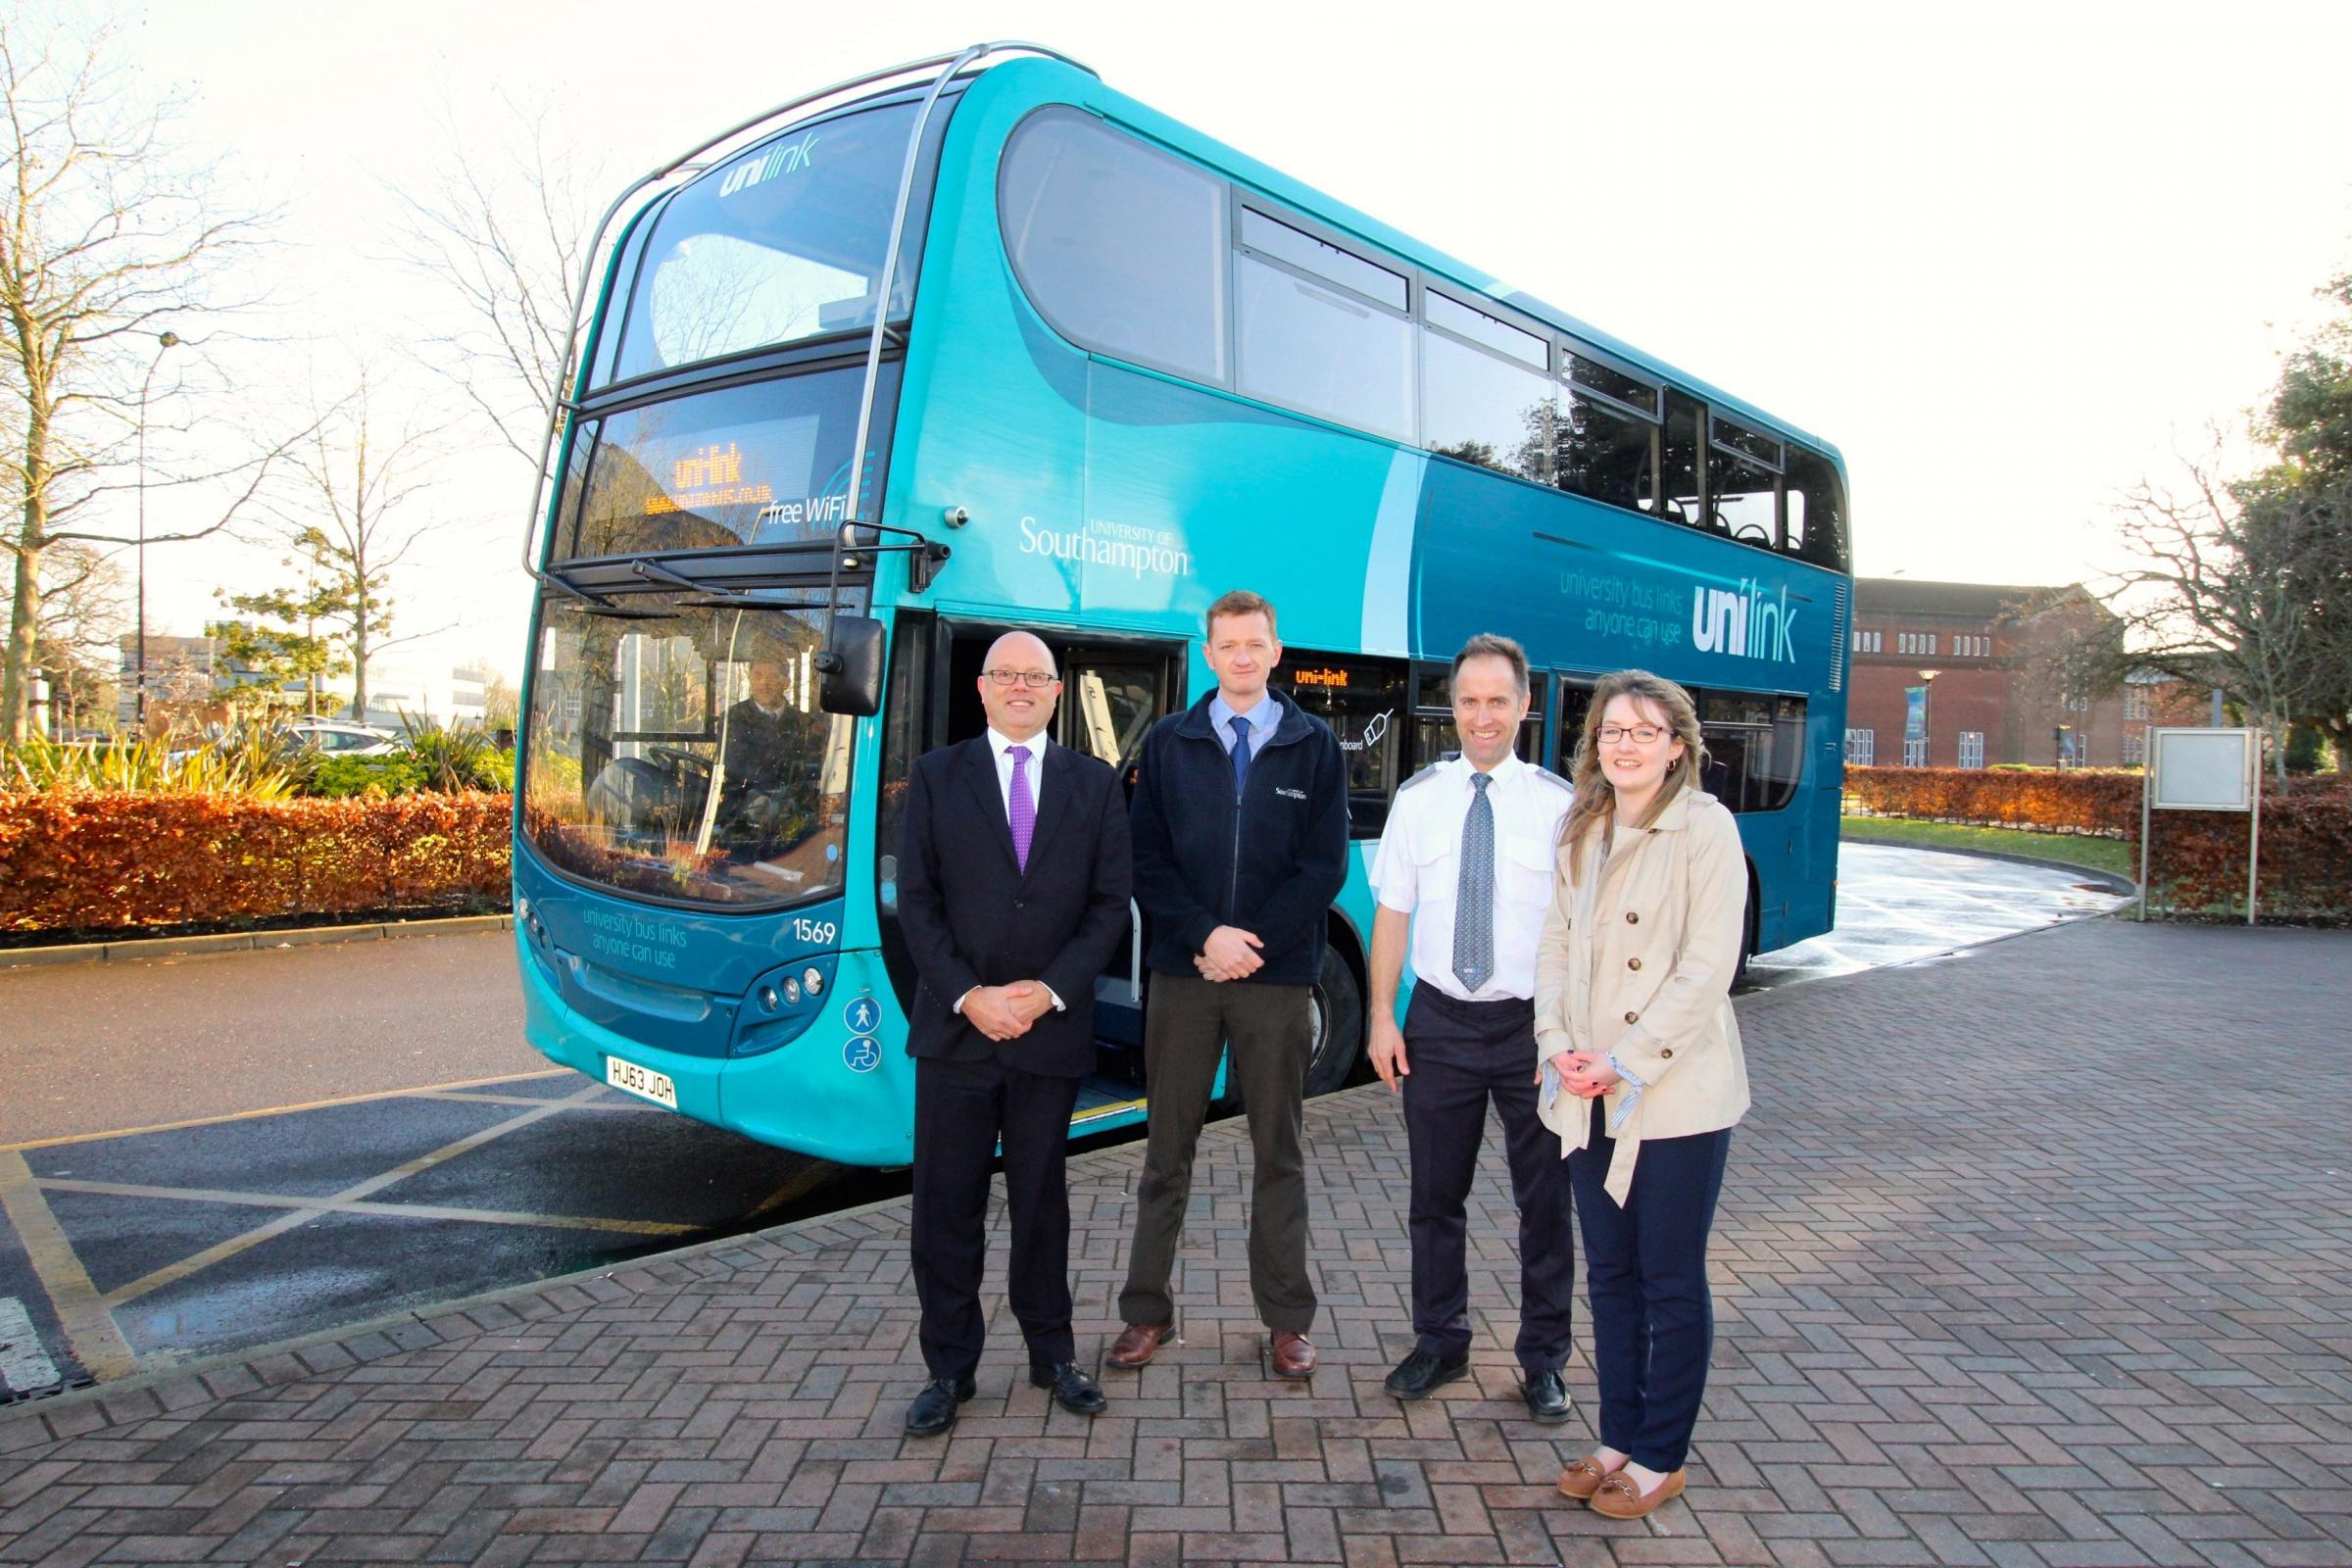 Pictured (L to R): Bluestar and Unilink managing director Andrew Wickham, University of Southampton transport manager Adam Tewkesbury, Unilink driver Mark Cottrell and Unilink operations manager Kerrie Grant.